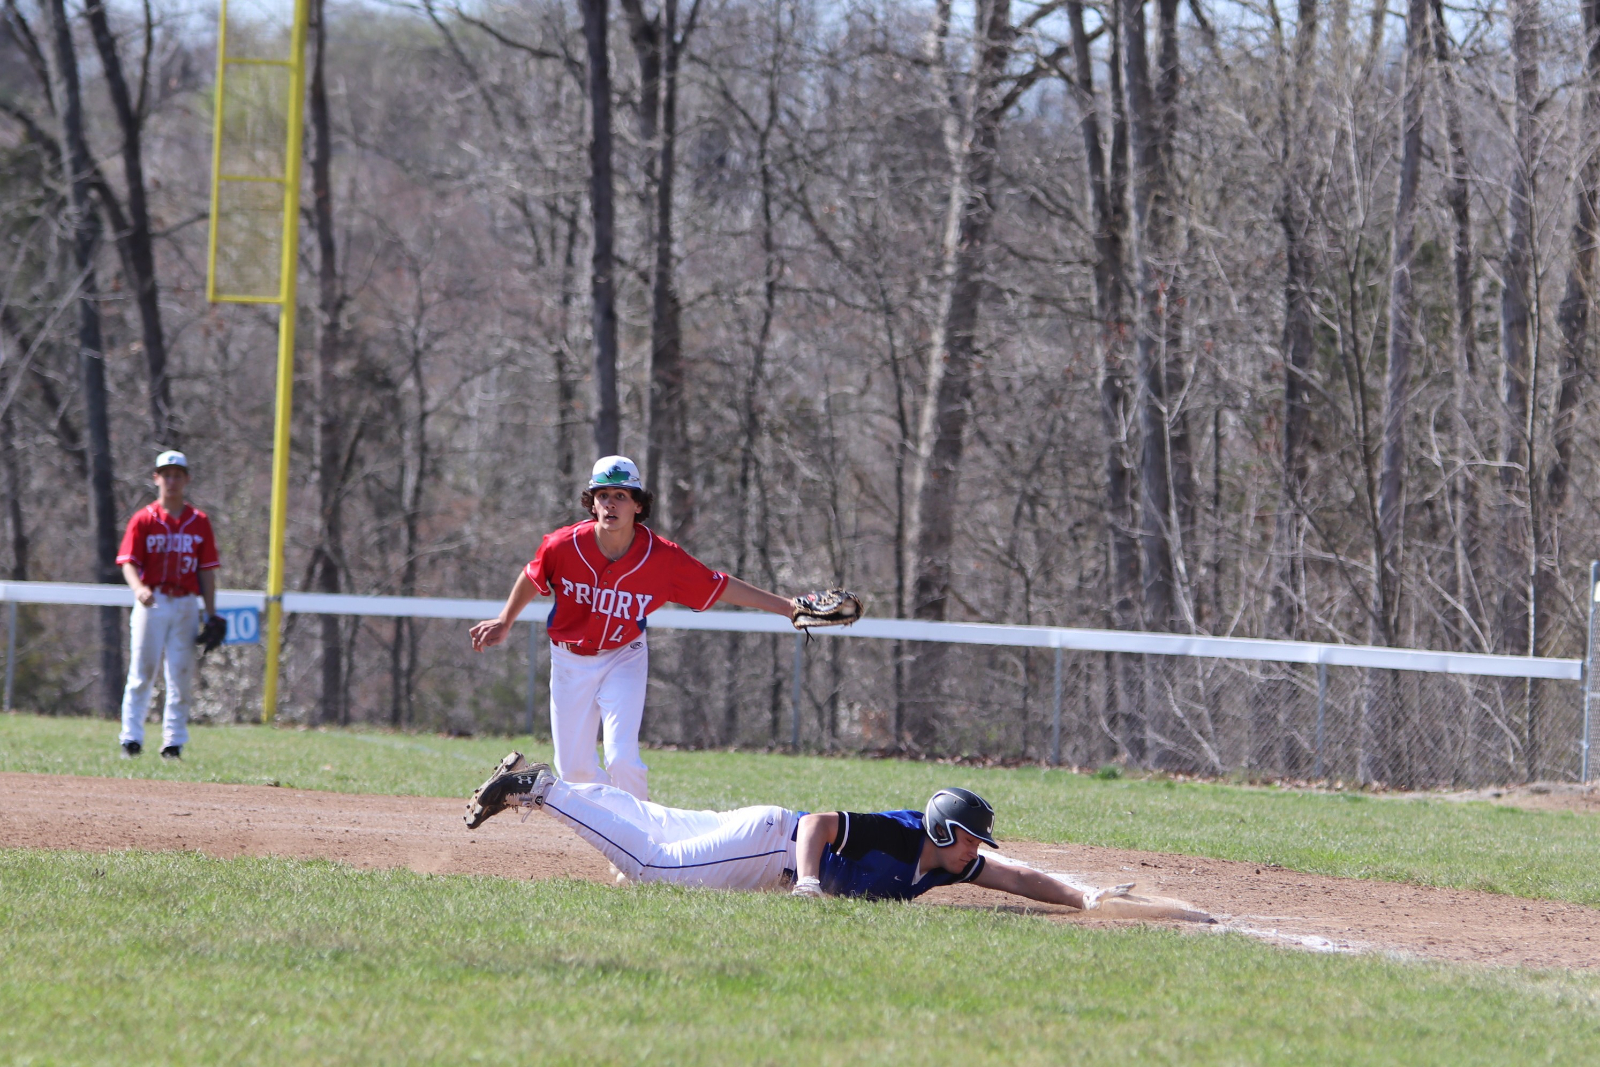 Baseball vs Priory 3/27/21